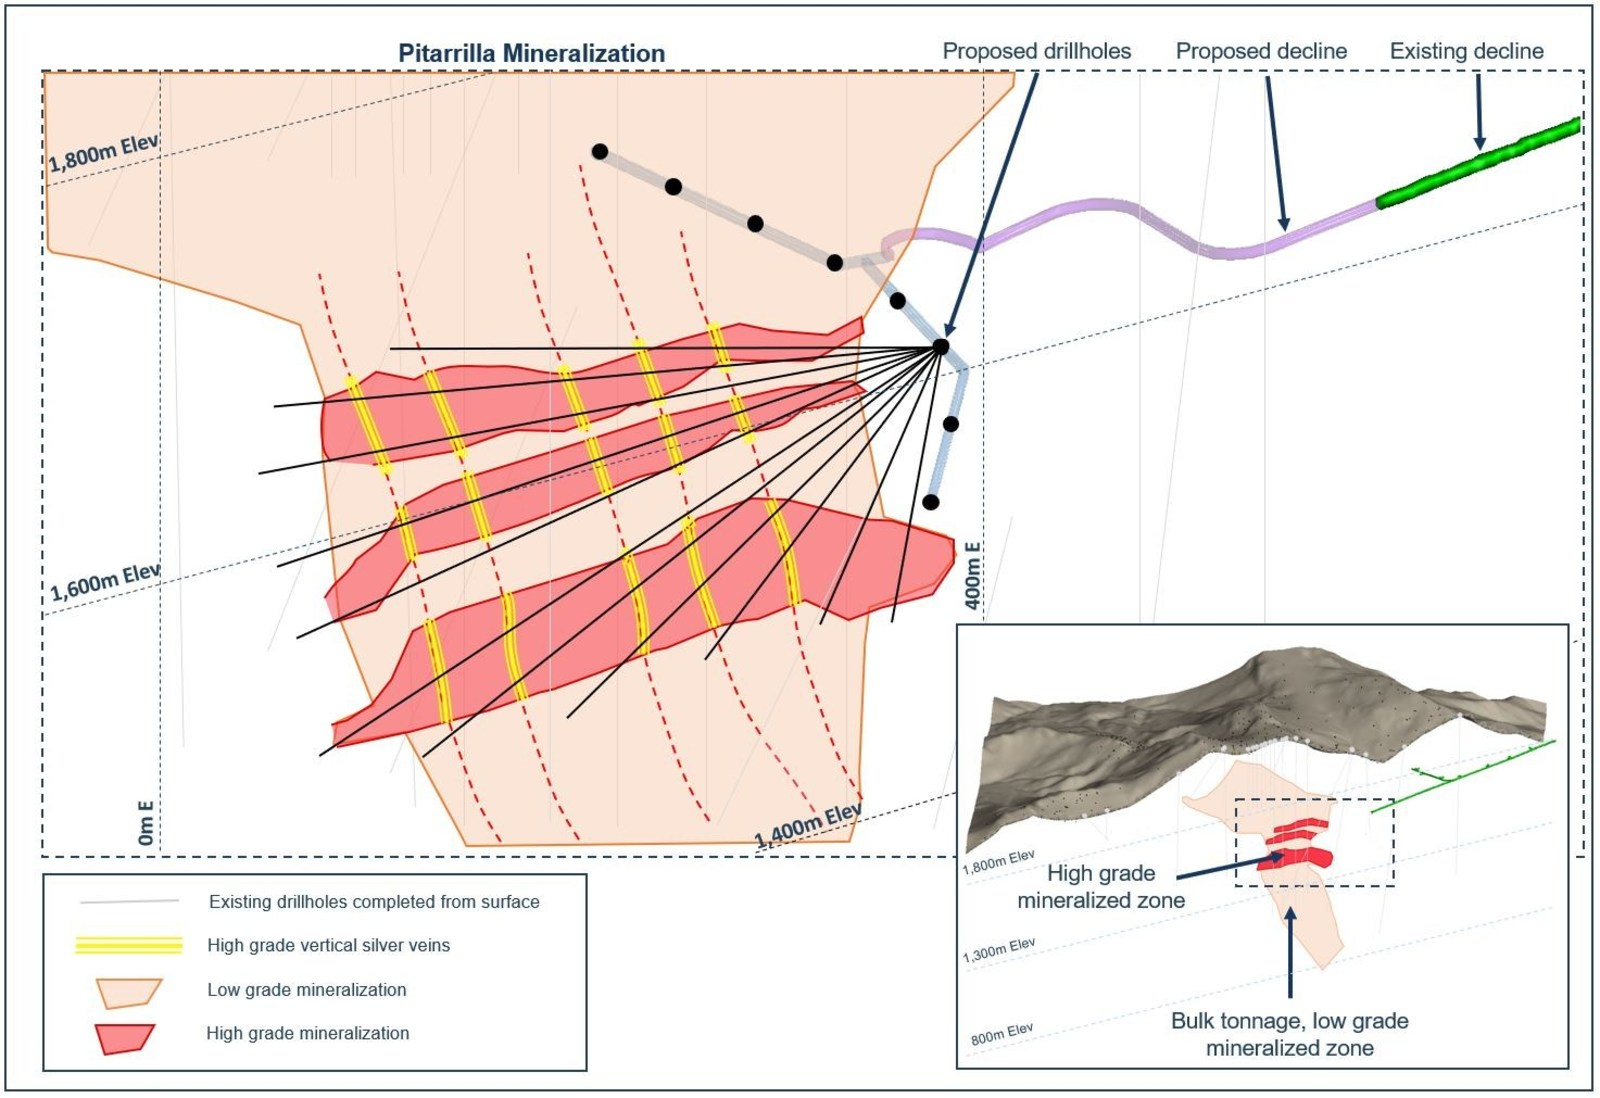 Figure 6. Cross section for the proposed exploration drill program at the Pitarrilla project, Durango, Mexico.